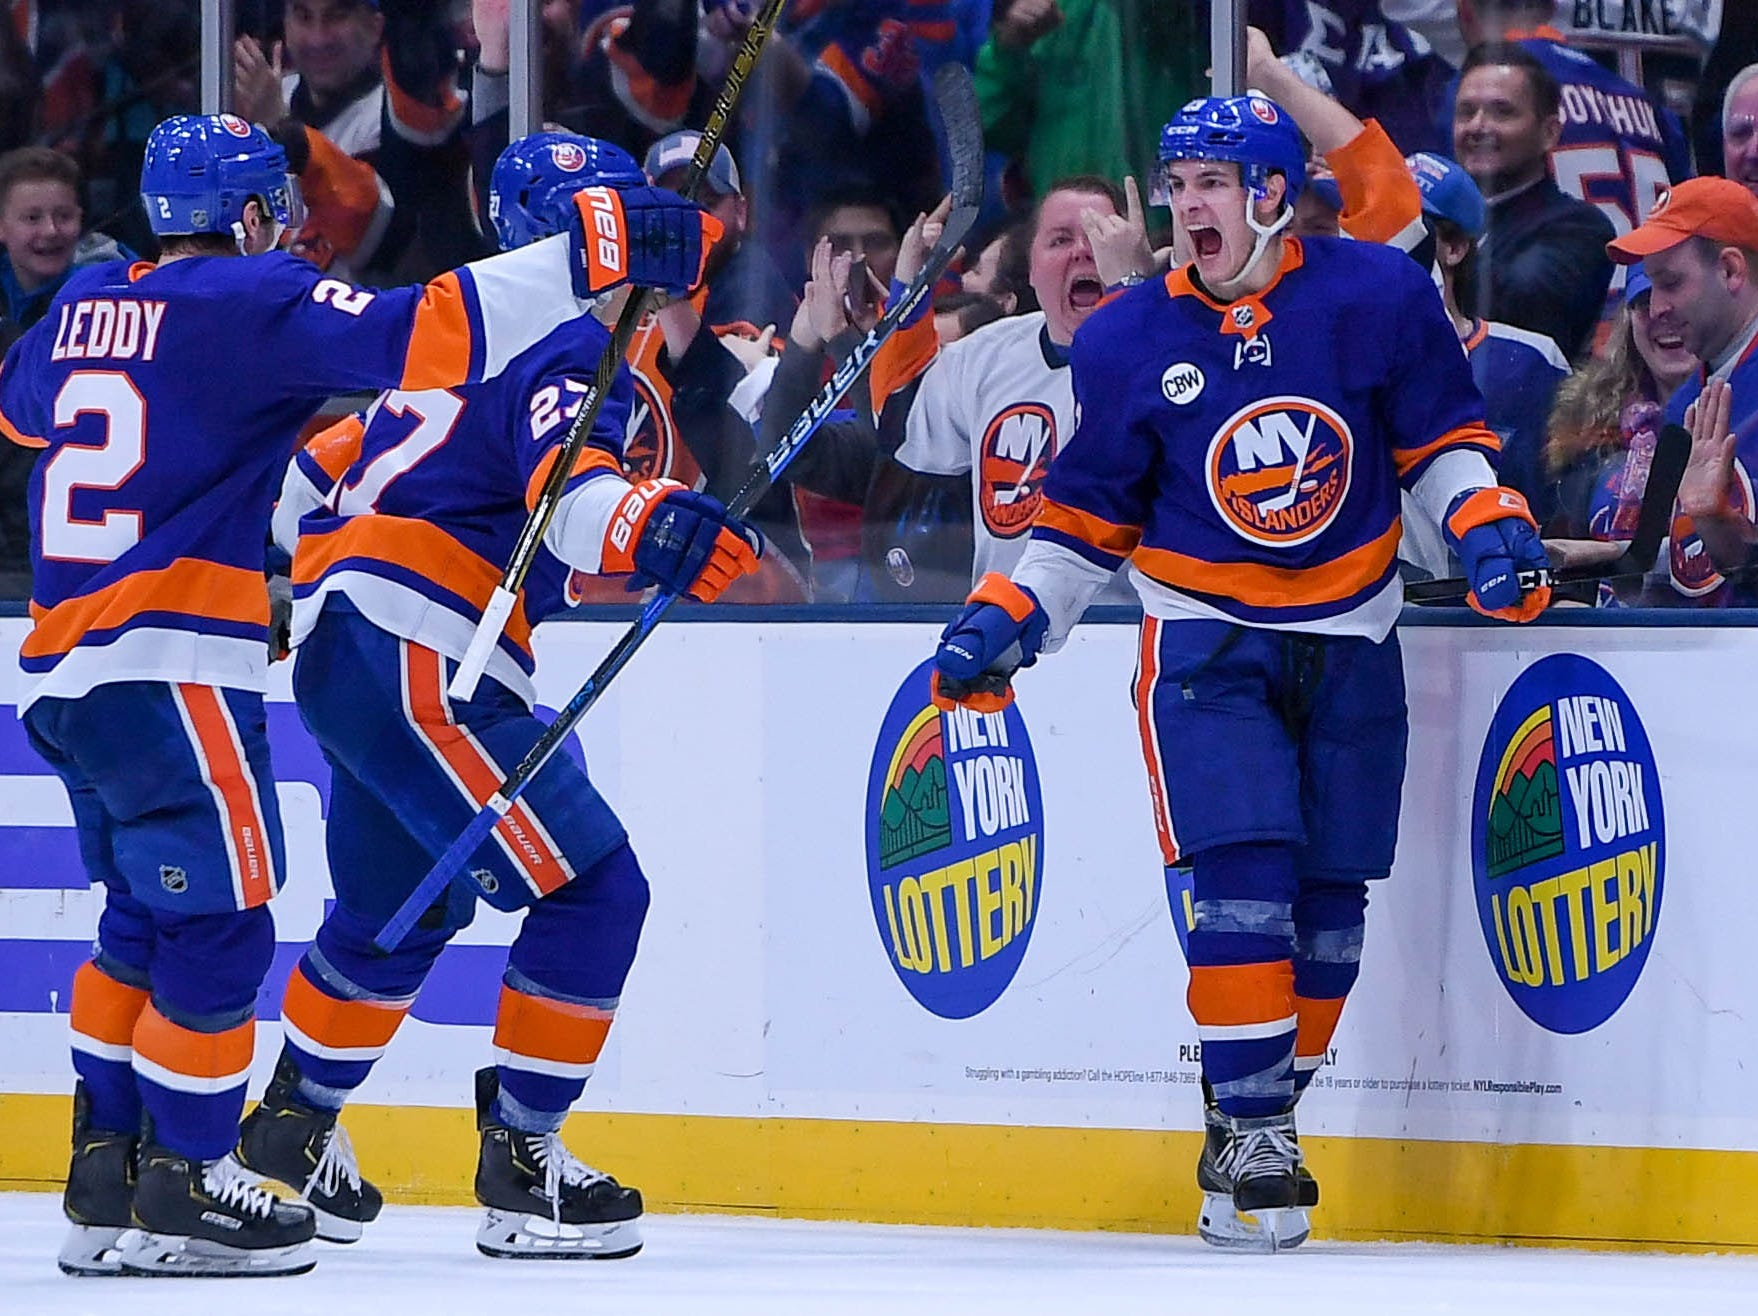 Dec. 15: New York Islanders center Mathew Barzal (13) celebrates after scoring a goal against the Detroit Red Wings during the third period at Nassau Veterans Memorial Coliseum.